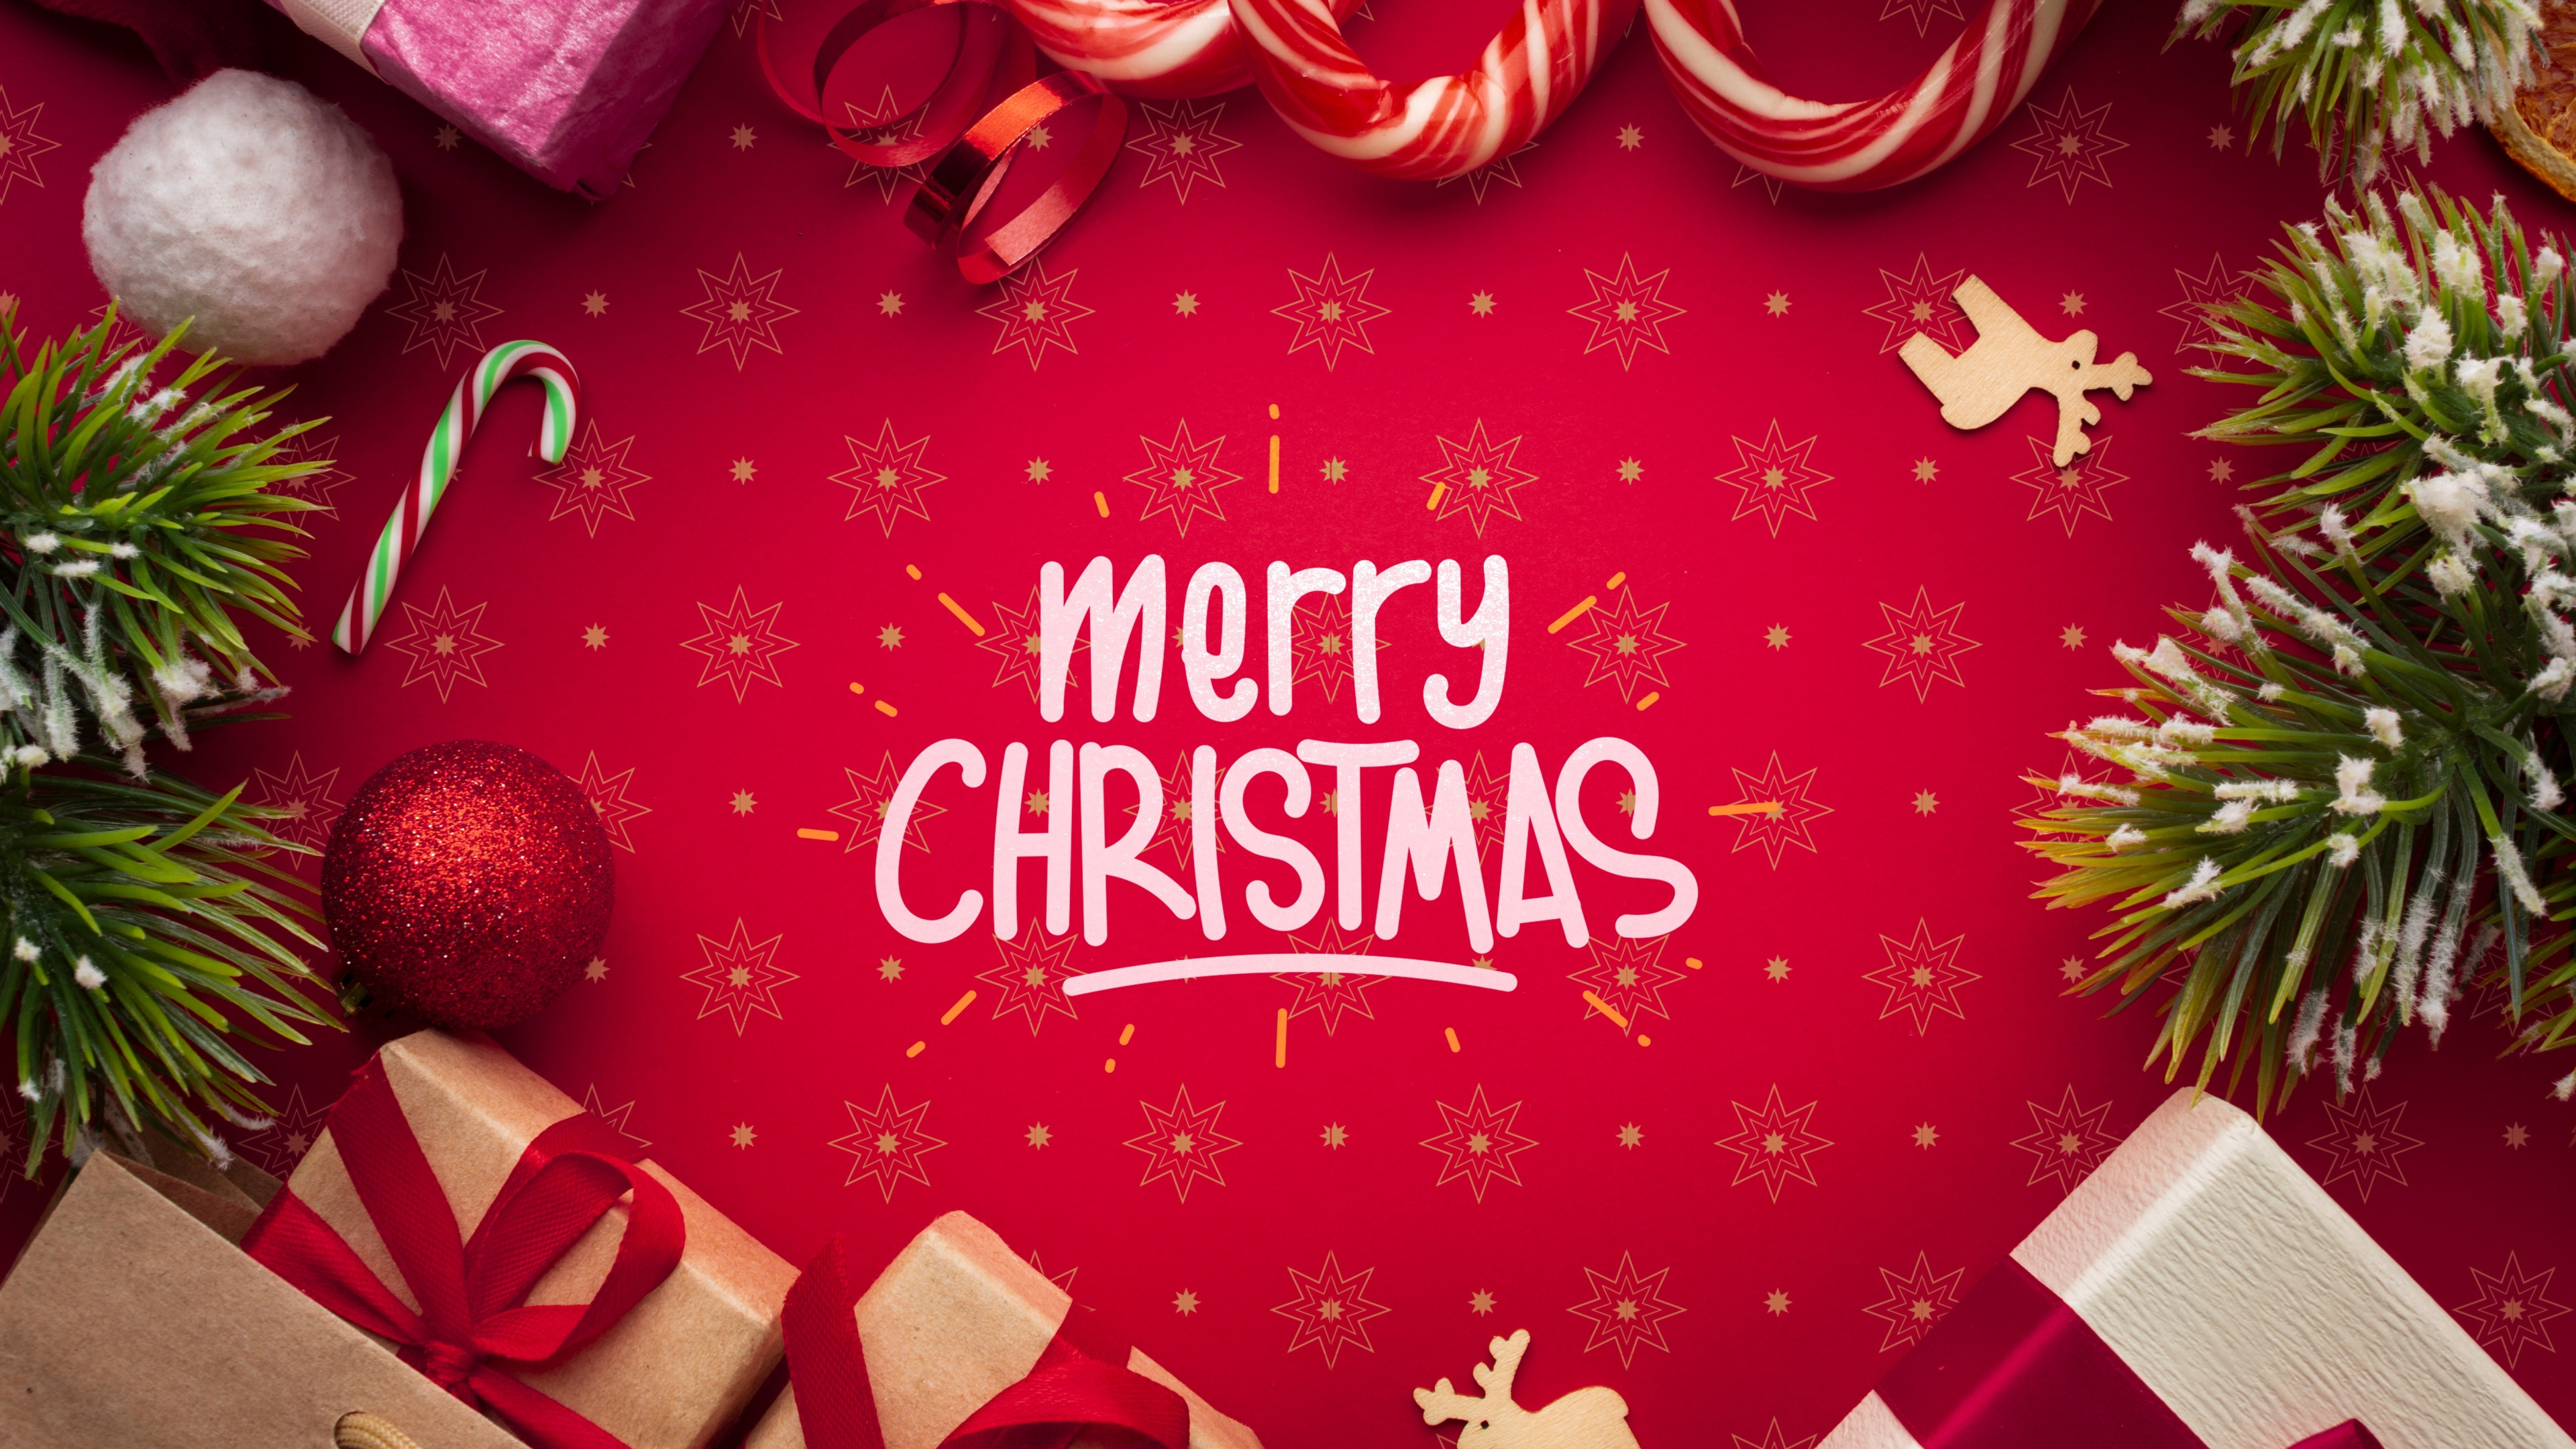 Merry Christmas Wallpaper High Resolution Free Image